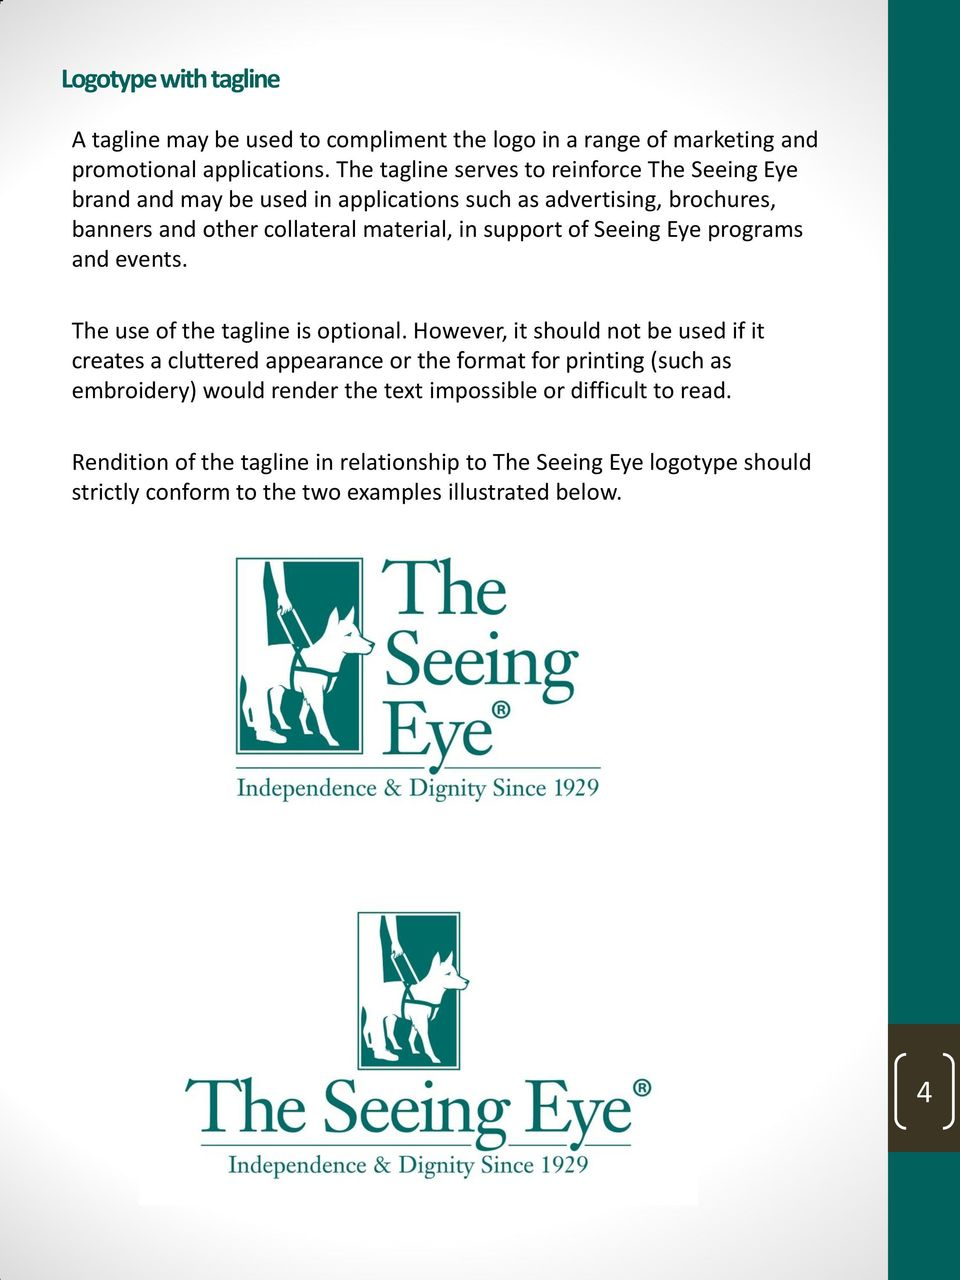 support of Seeing Eye programs and events. The use of the tagline is optional.